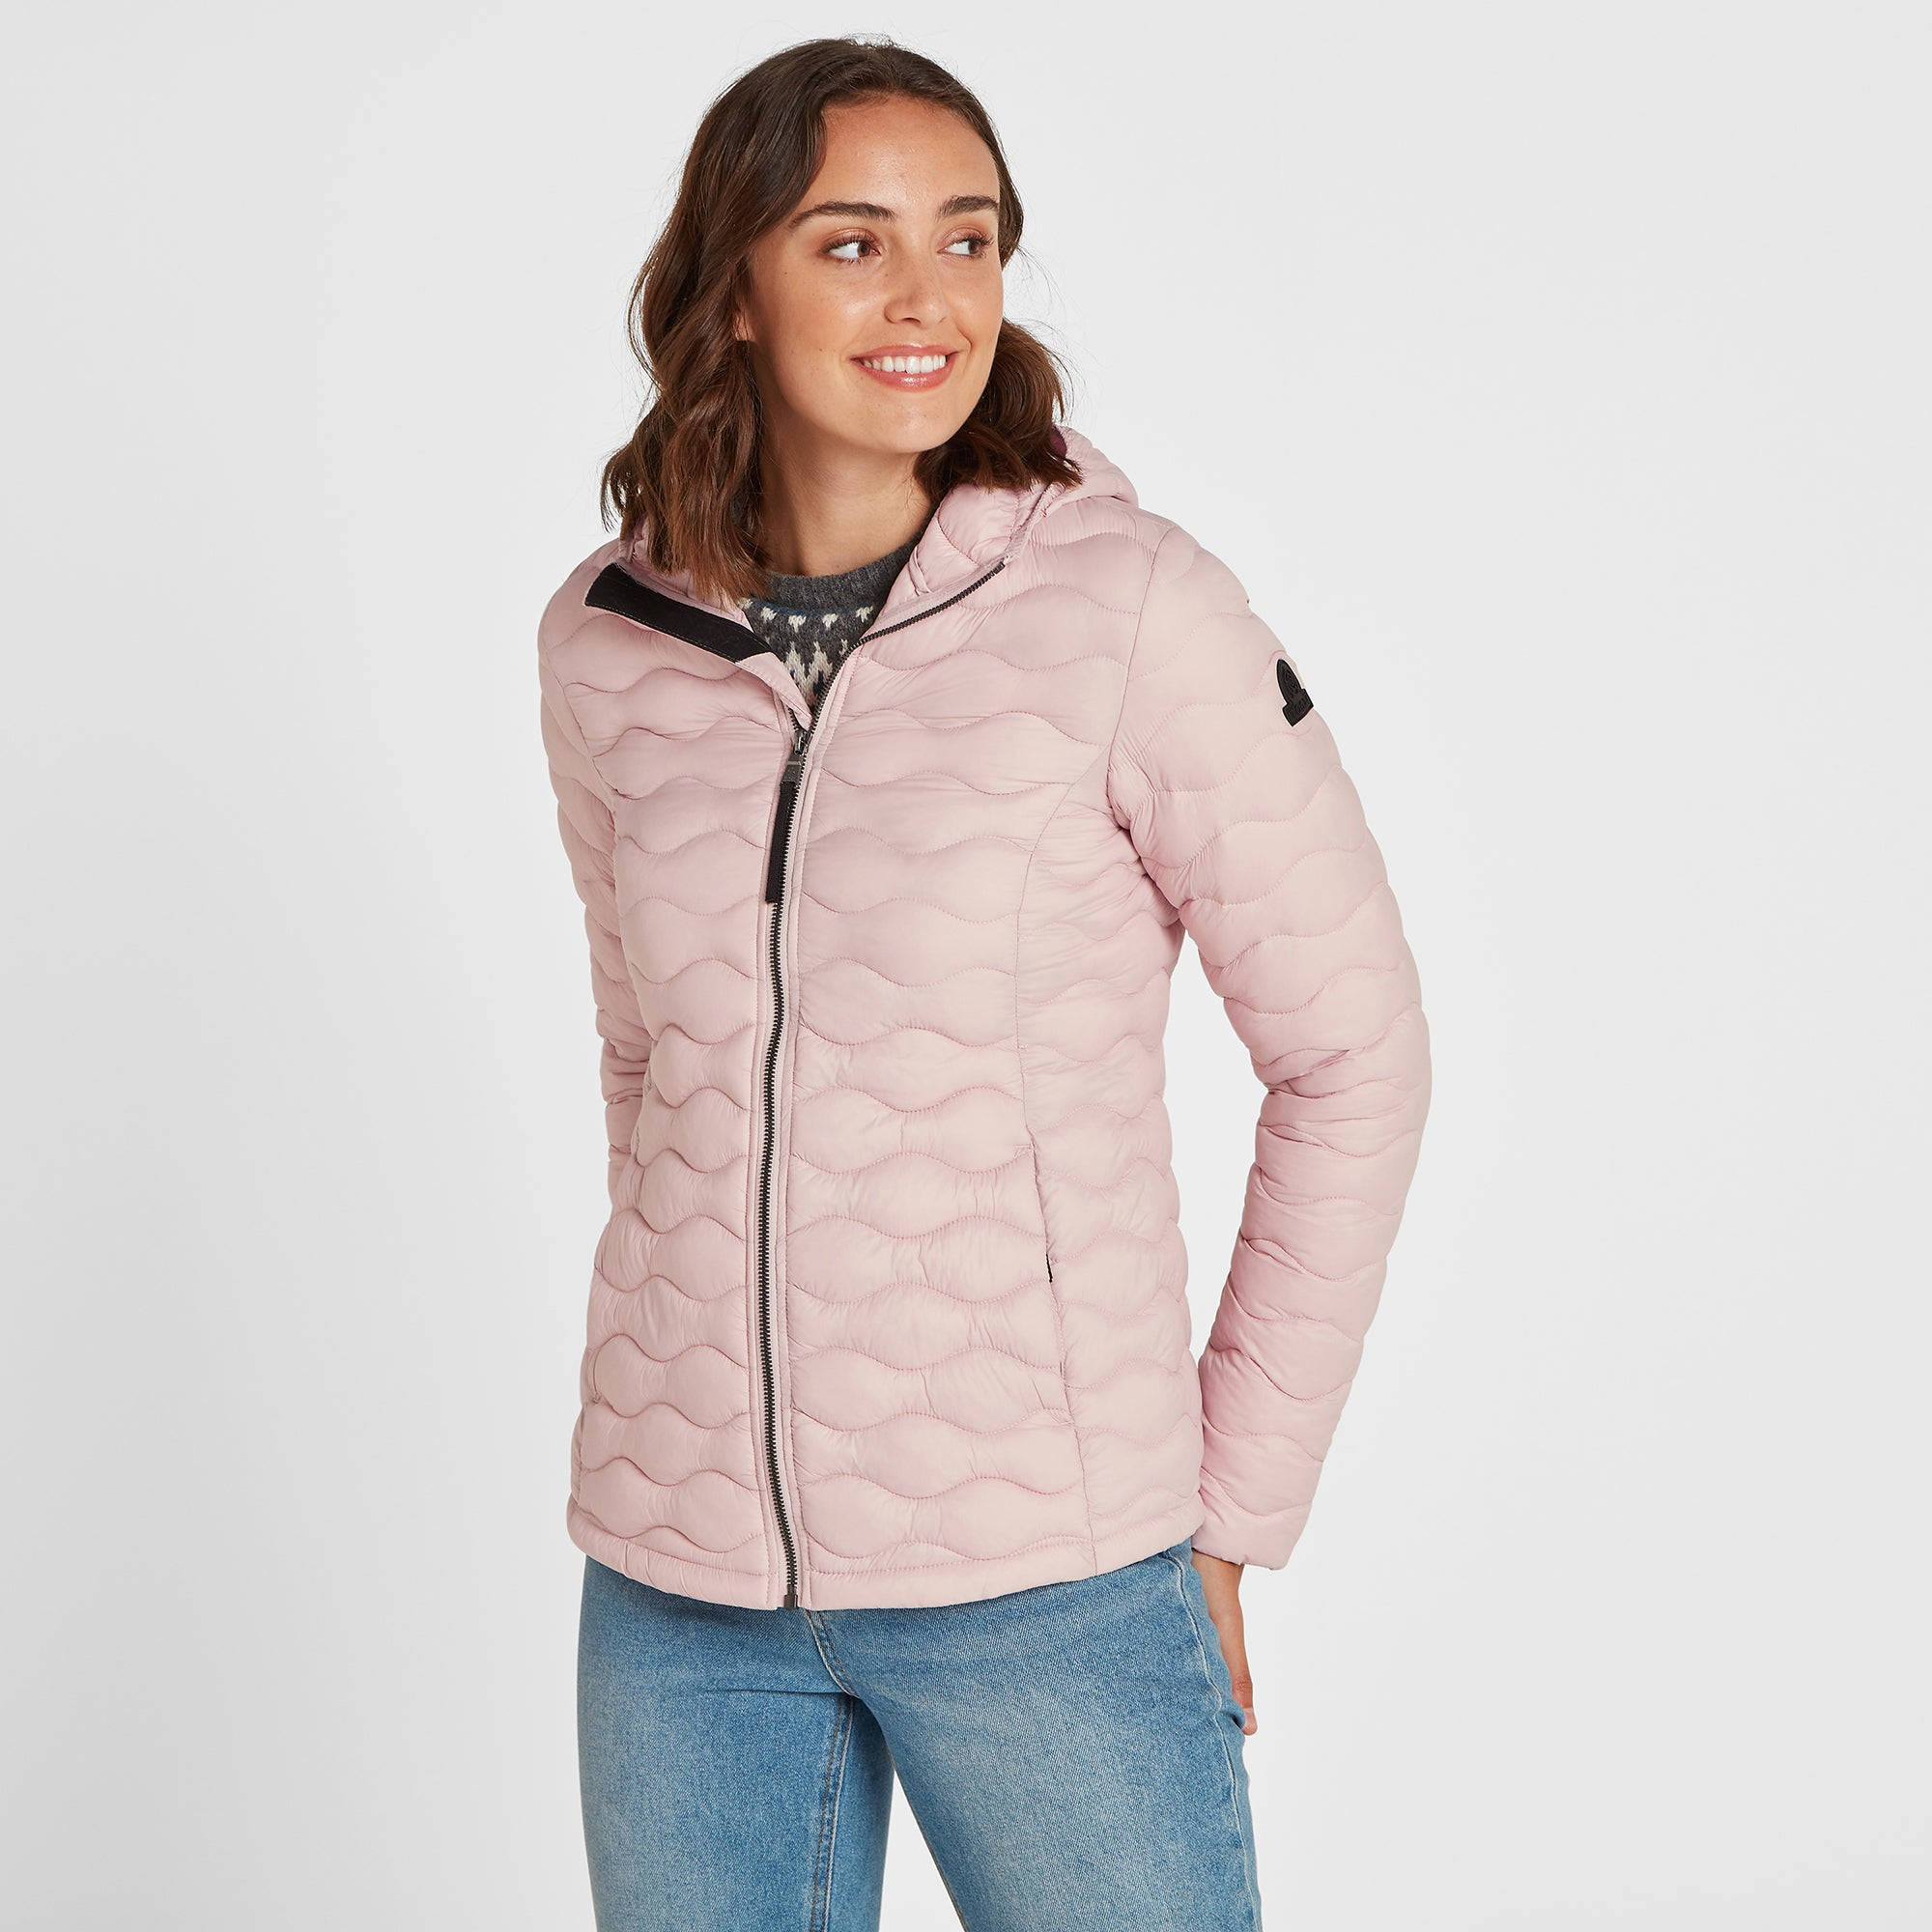 Brimham Womens Thermal Jacket - Rose Pink